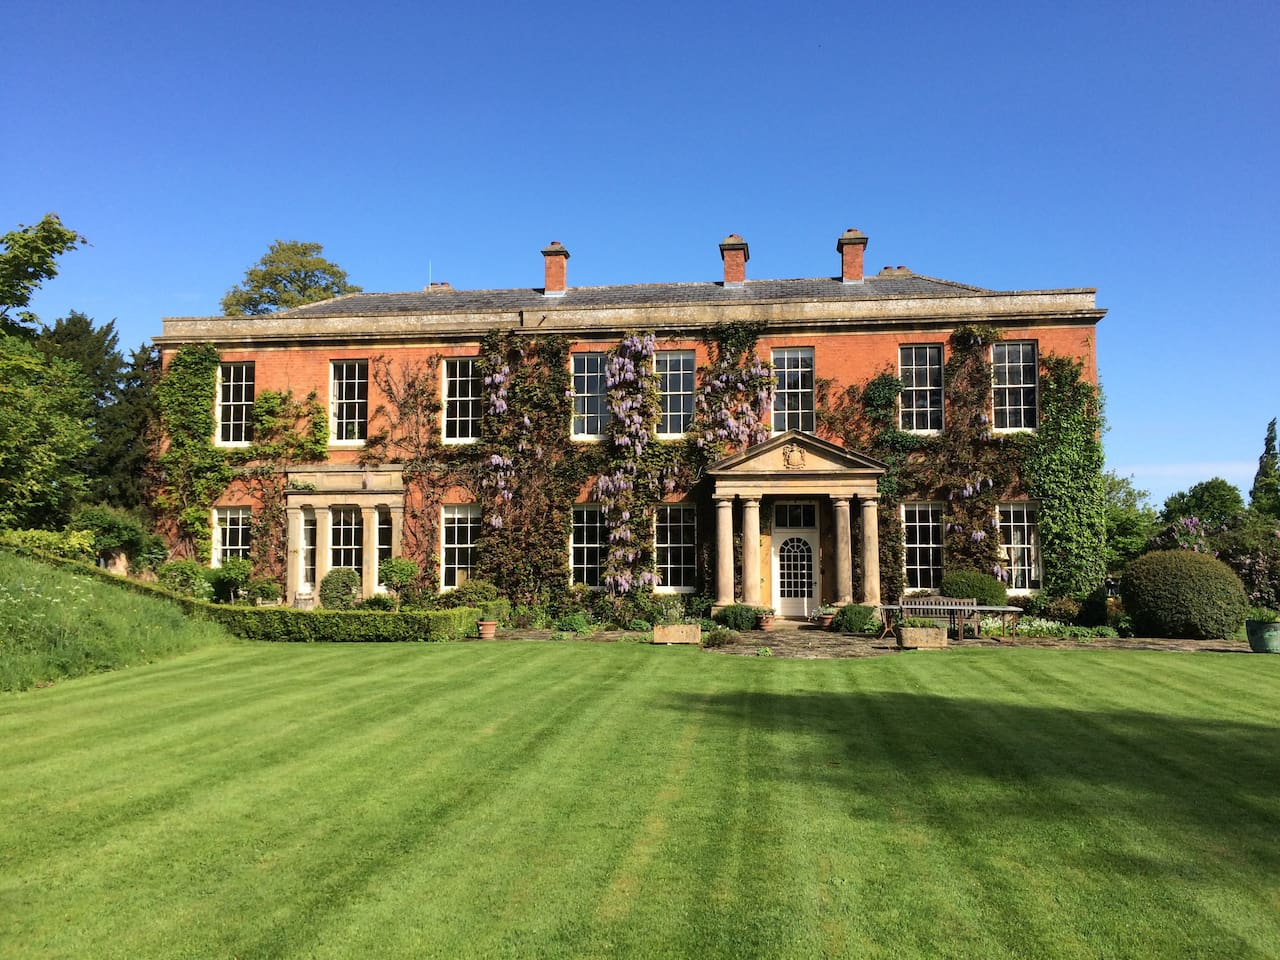 Norton Hall from the lawn